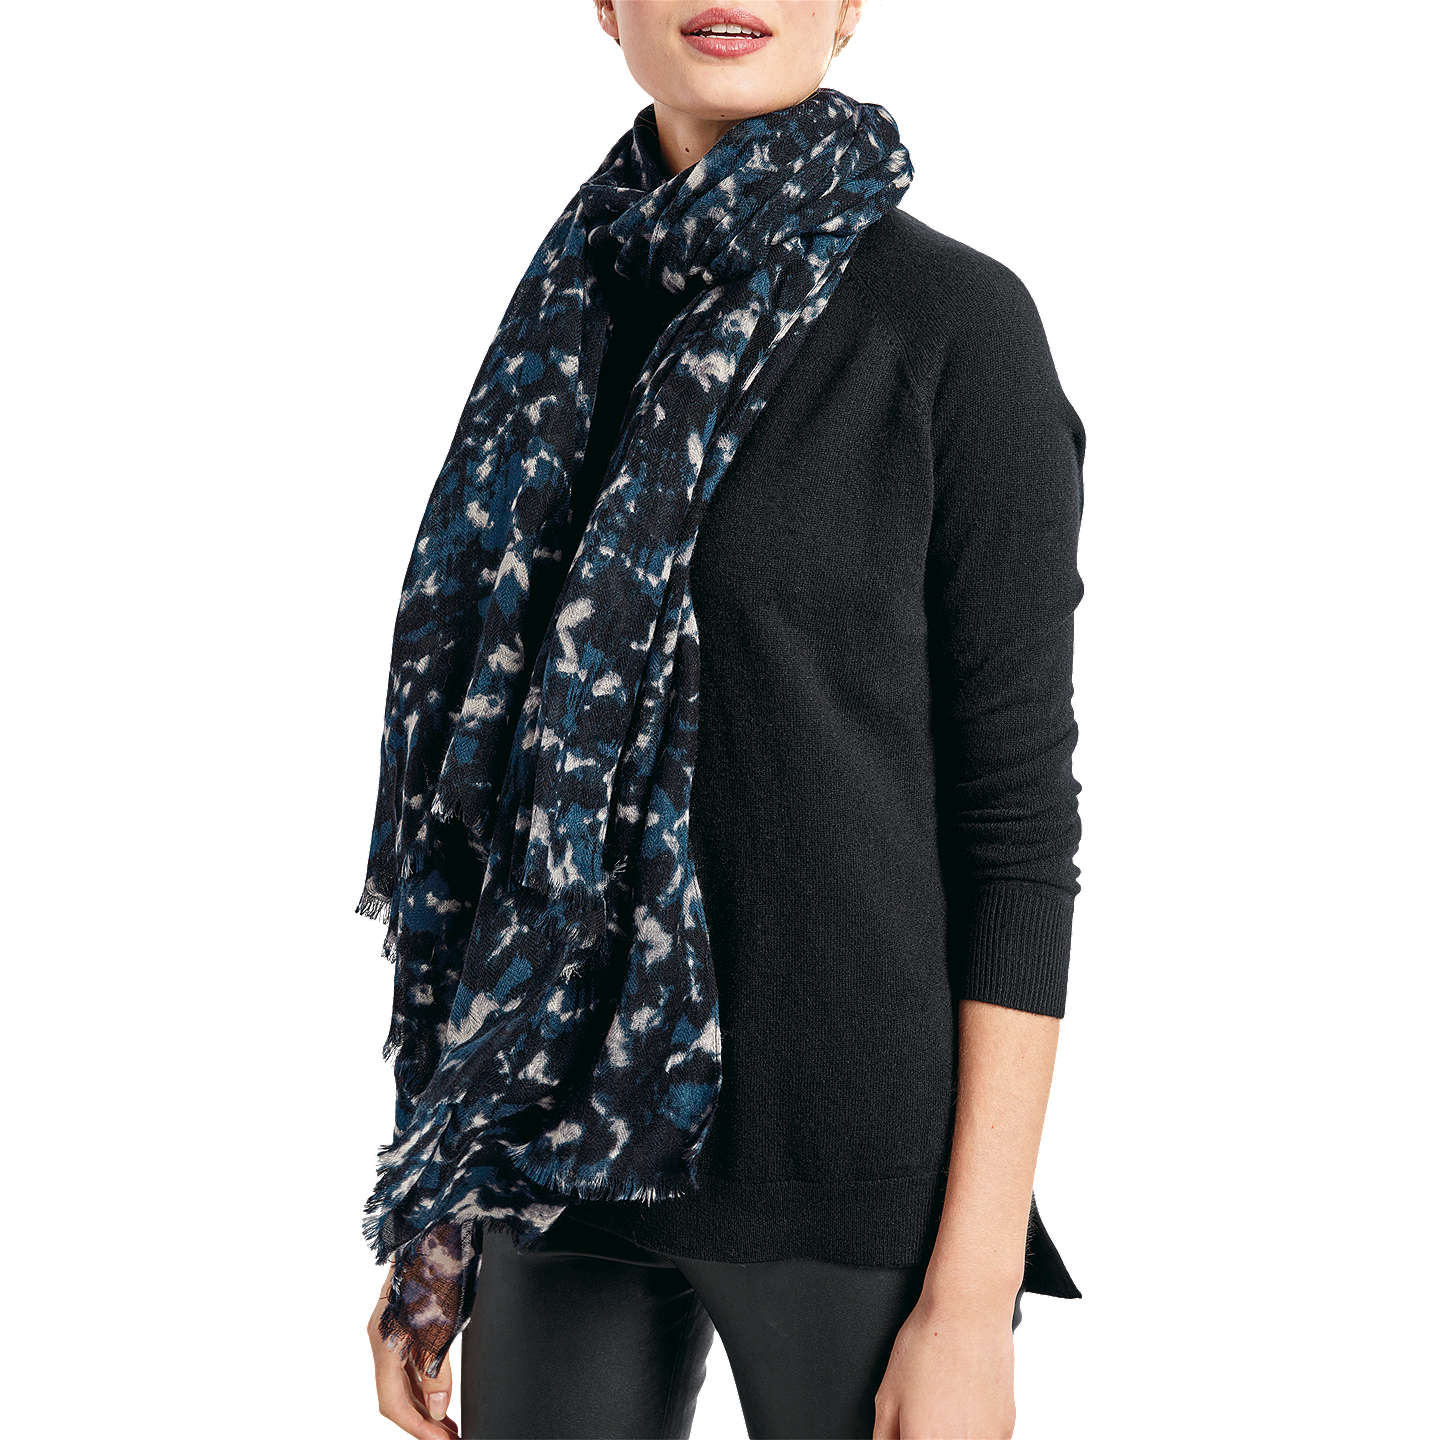 Buyhush Lola Scarf, Black/Blue Online at johnlewis.com